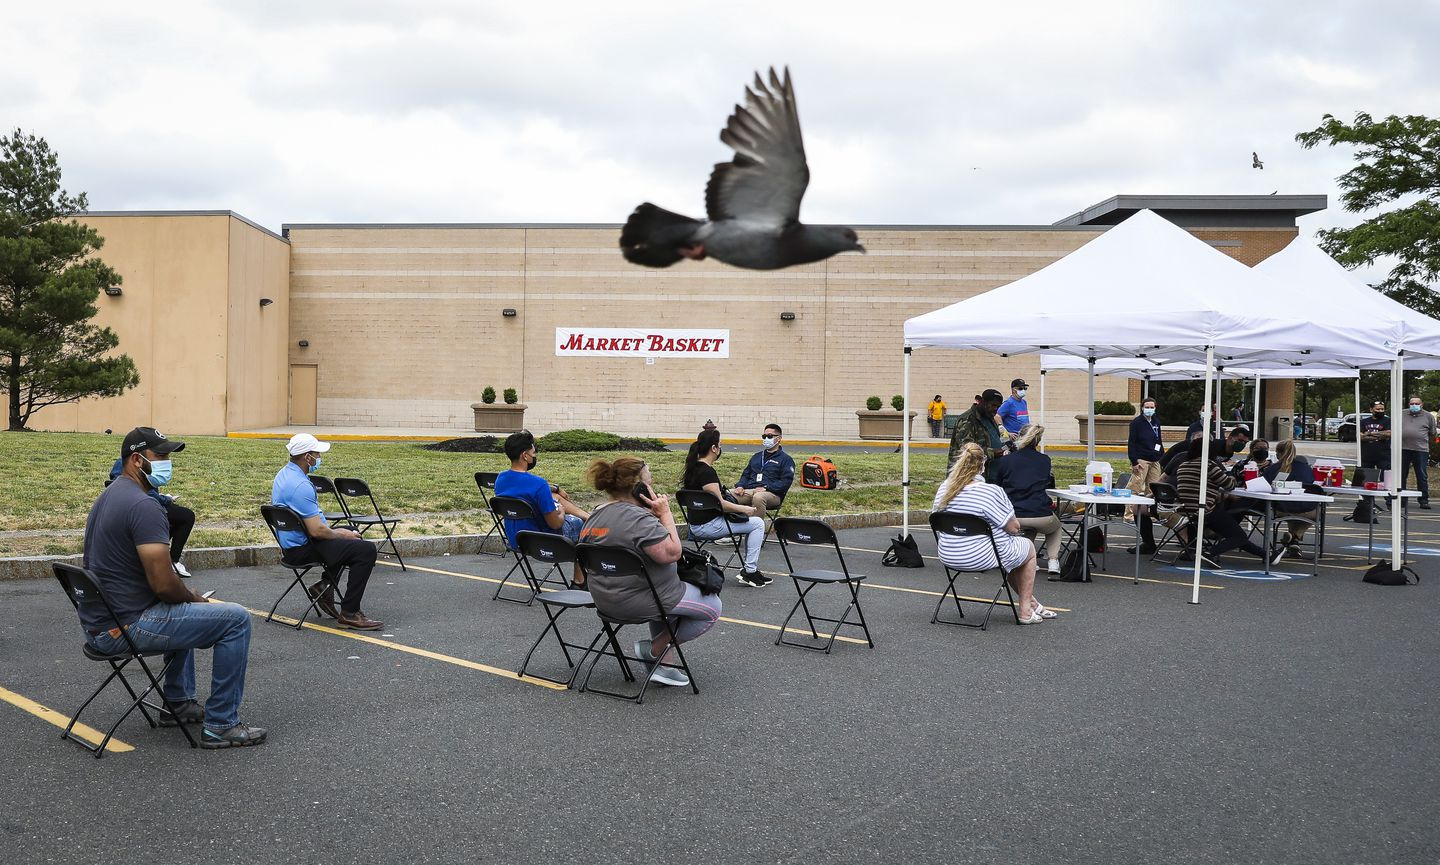 People waited for 15 minutes after receiving their COVID-19 vaccine at mobile clinic outside of Market Basket in Chelsea on Thursday.